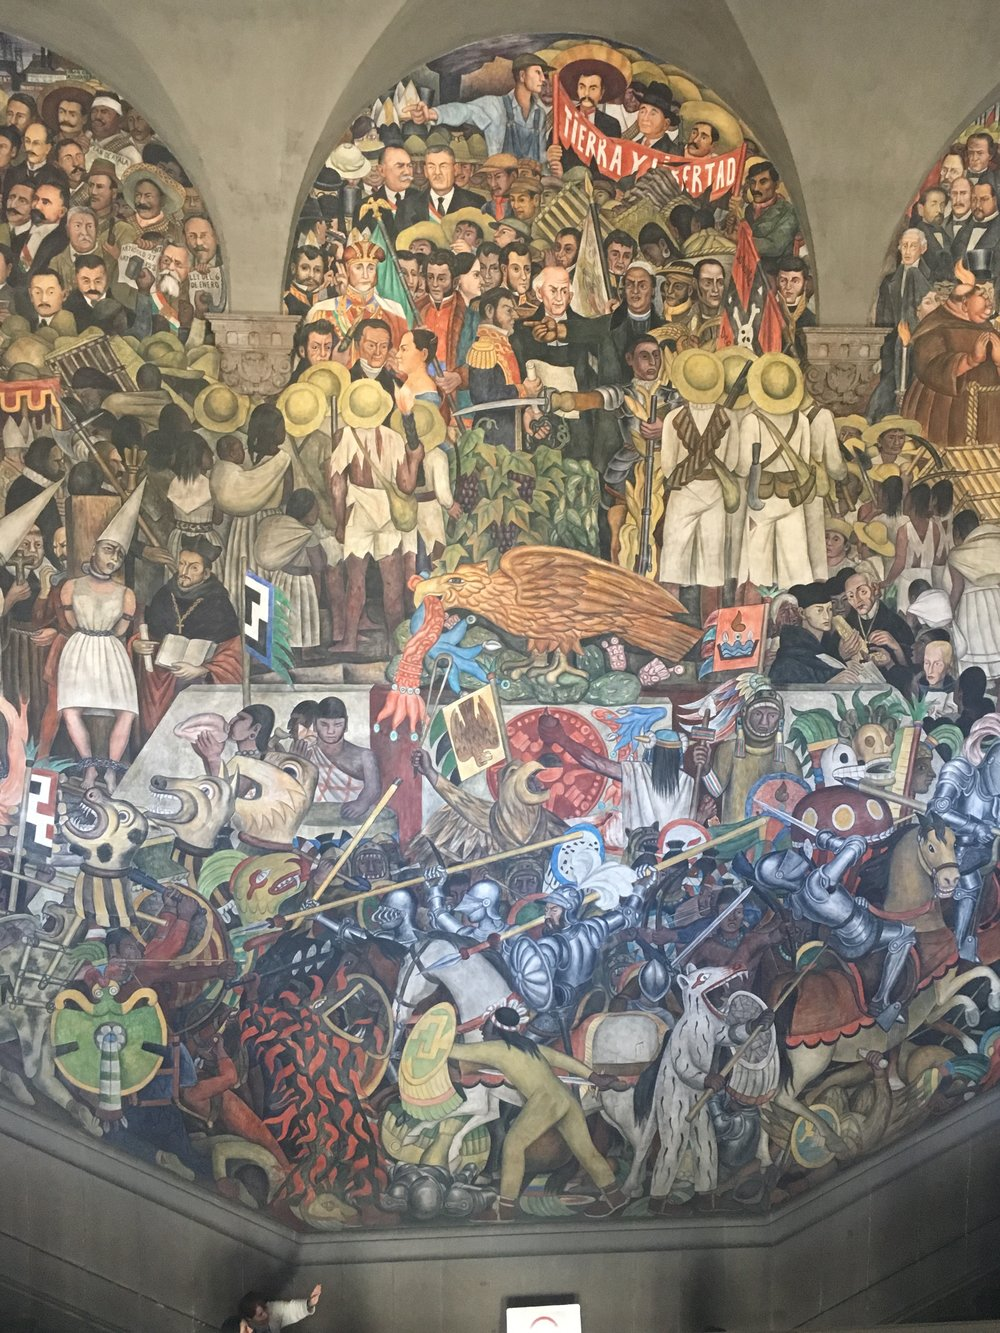 Diego Rivera mural at the National Palace in Mexico City.